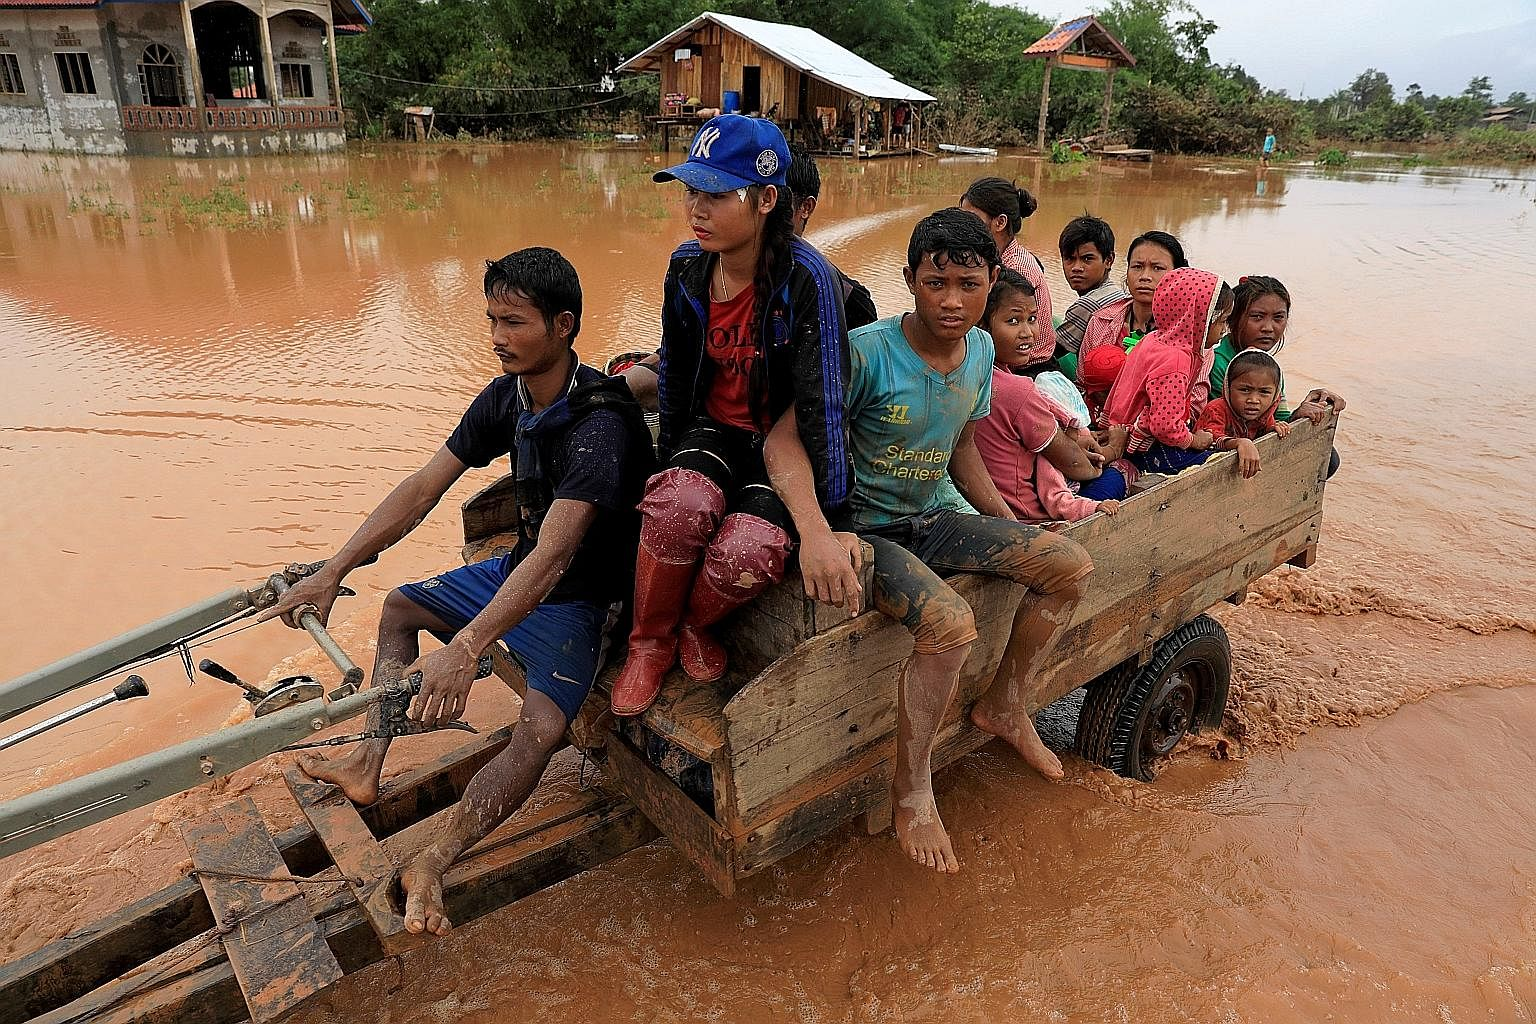 A family escaping the floods in Attapeu province, Laos.